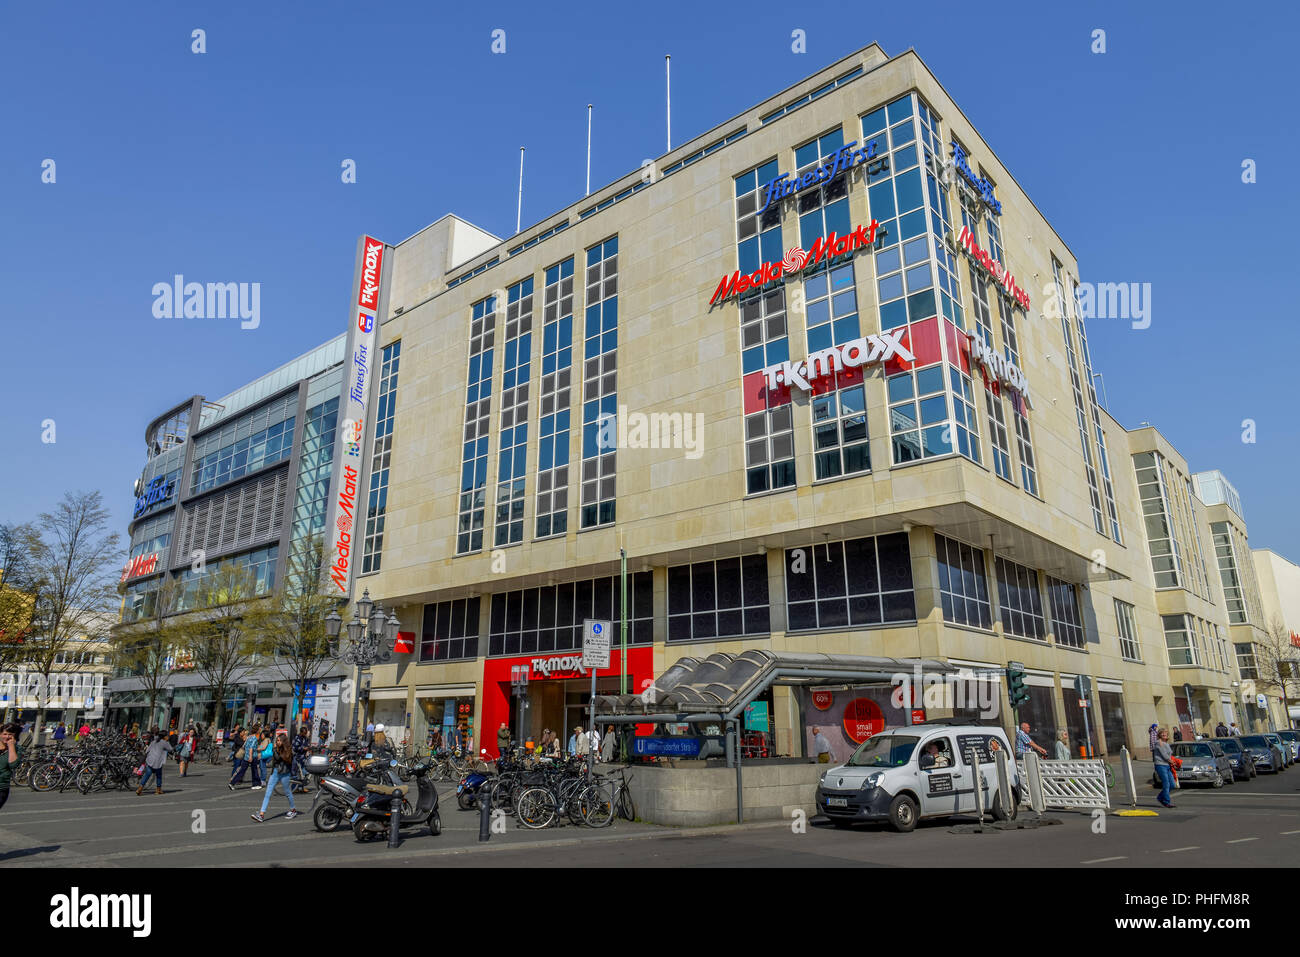 Page 2 Mediamarkt High Resolution Stock Photography And Images Alamy